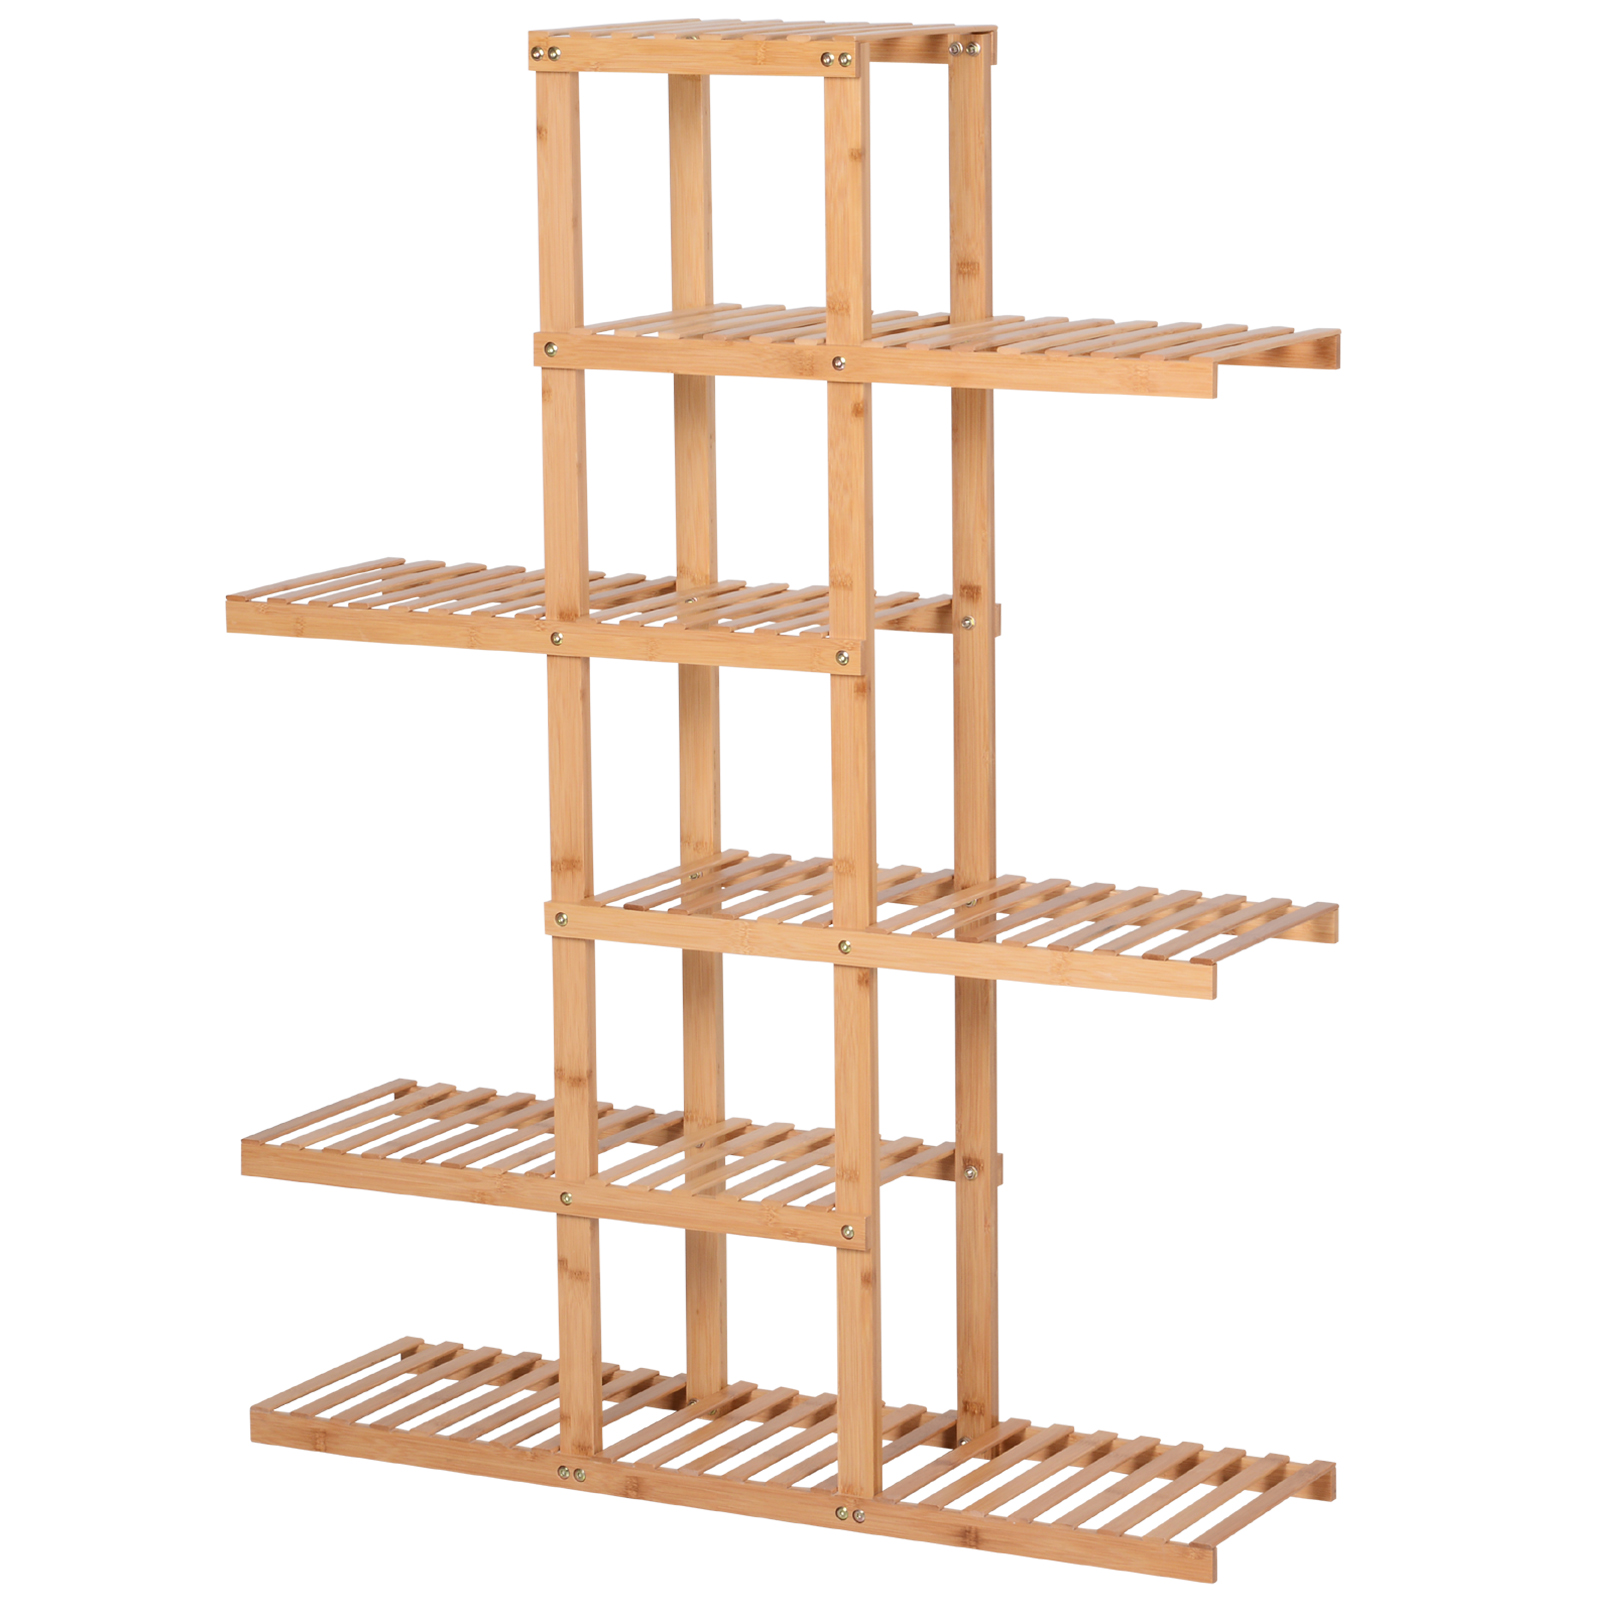 HOMCOM Shelf In Natural Bamboo With 6 Shelves, Indoor And Outdoor, Max Load 30kg, 98x28x132cm;